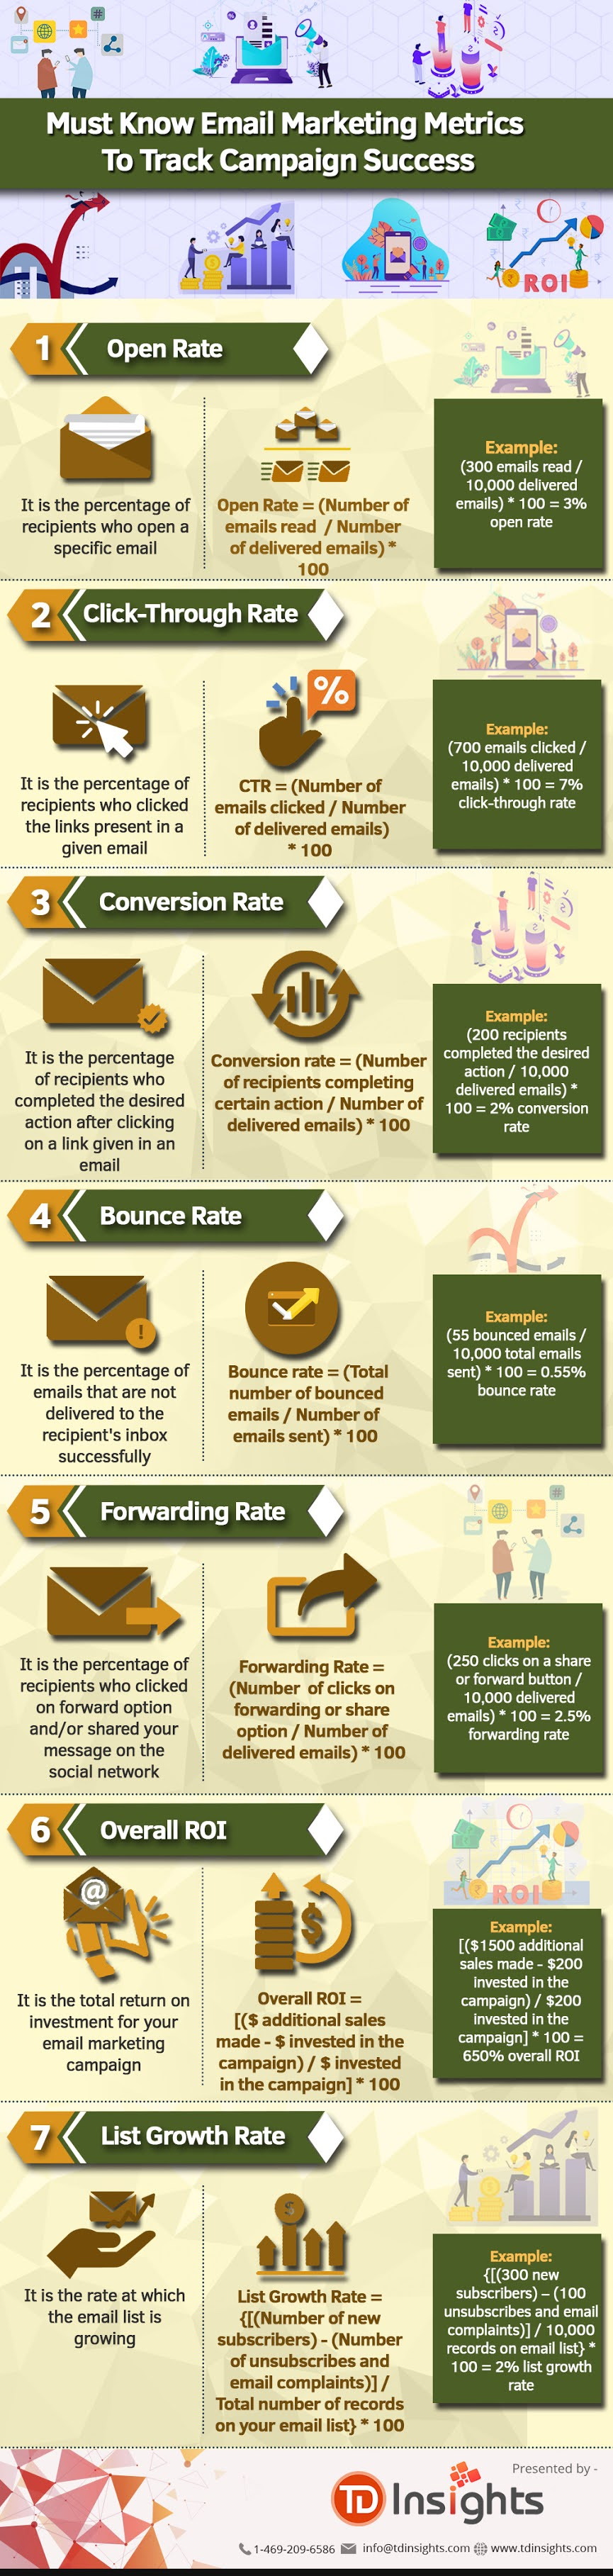 Must Know Email Marketing Metrics To Track Campaign Success #infographic #Marketing #infographics #Marketing Metrics #Email Marketing #Success Campaign